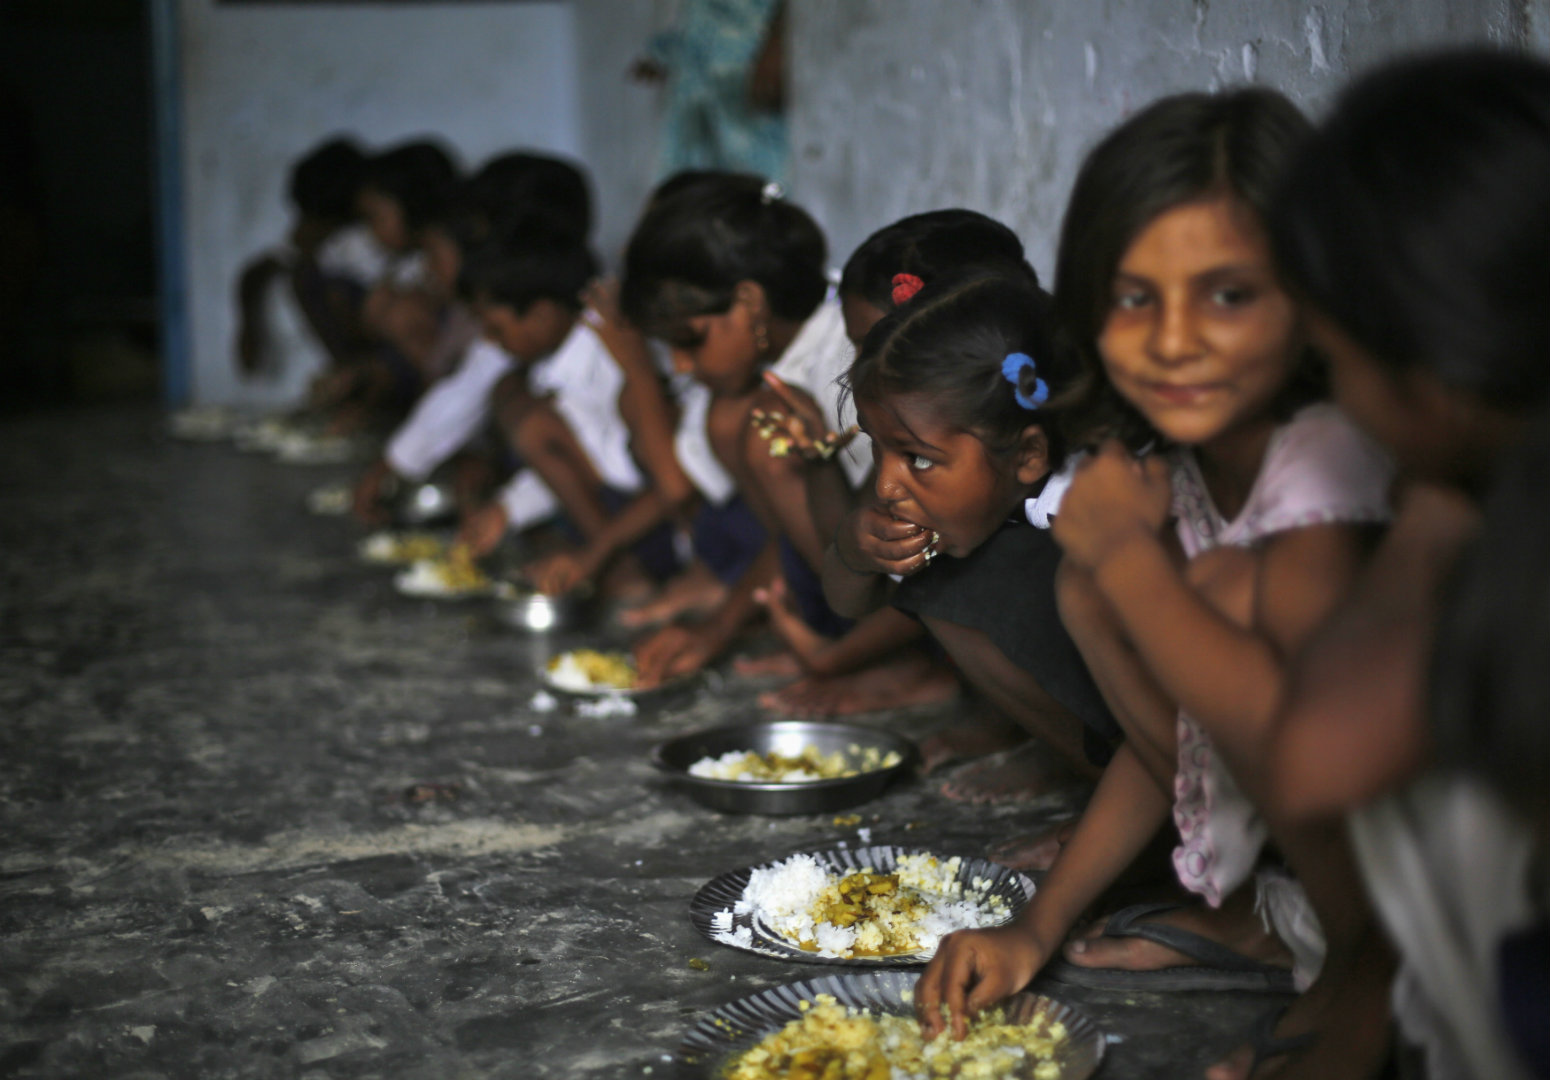 Food insecurity may be damaging Indian children's abilities